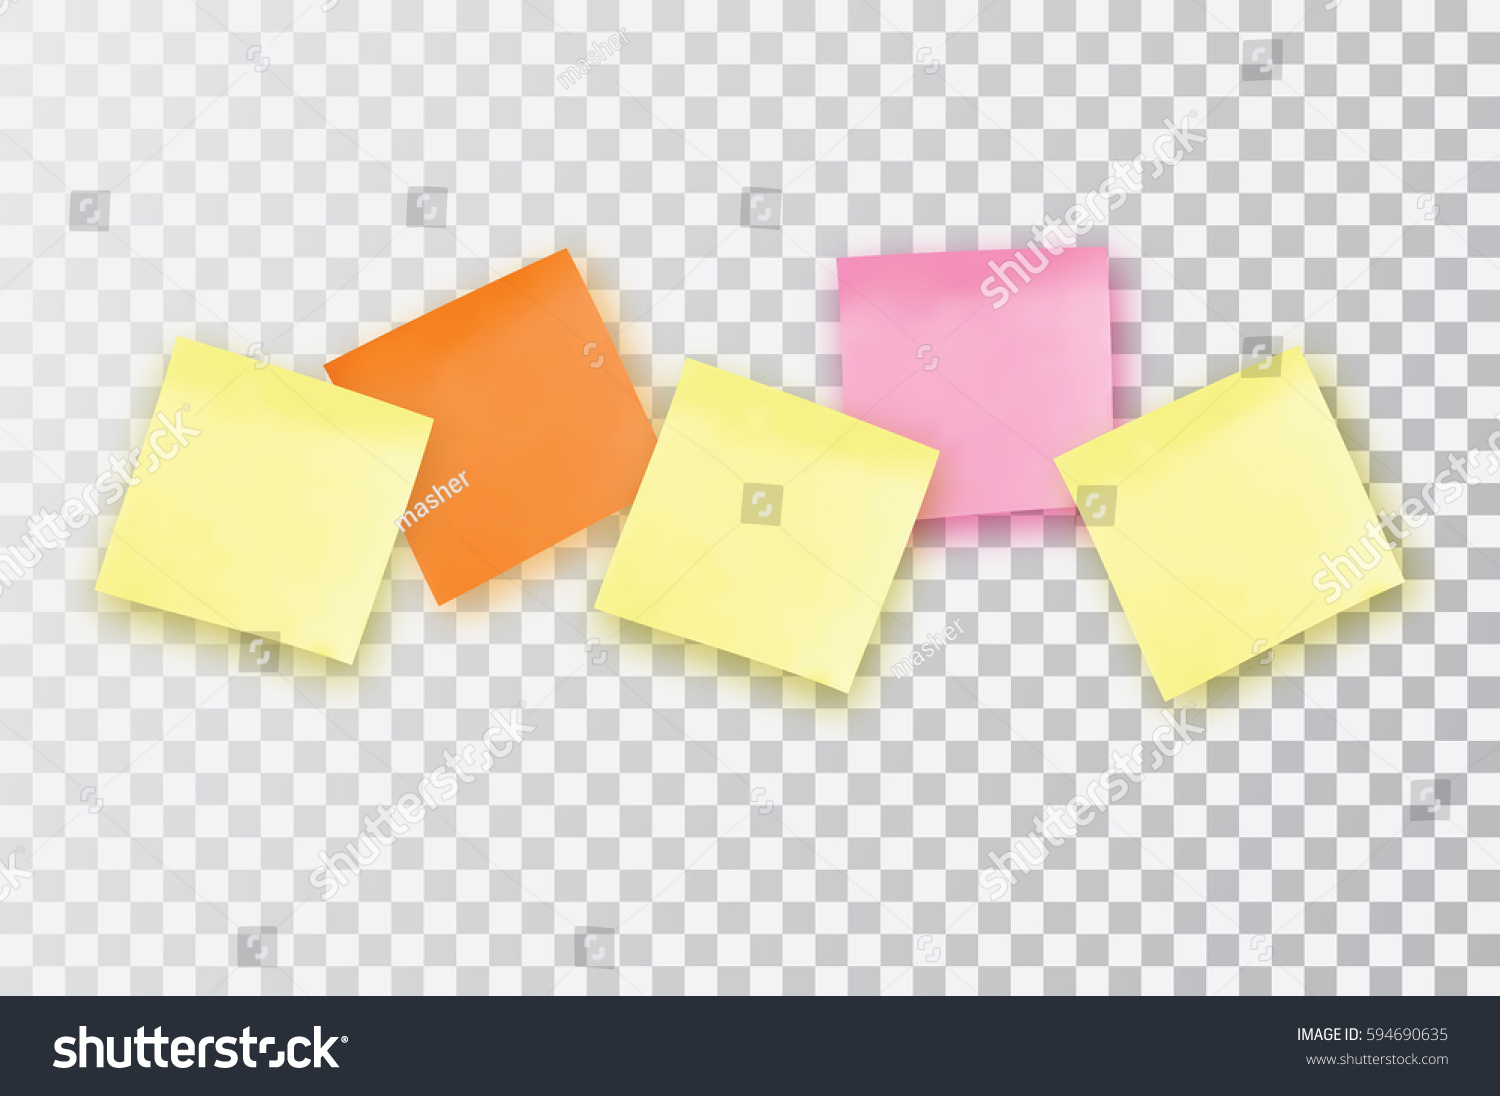 Sticky note templates fieldstation sticky note templates jeuxipadfo Images